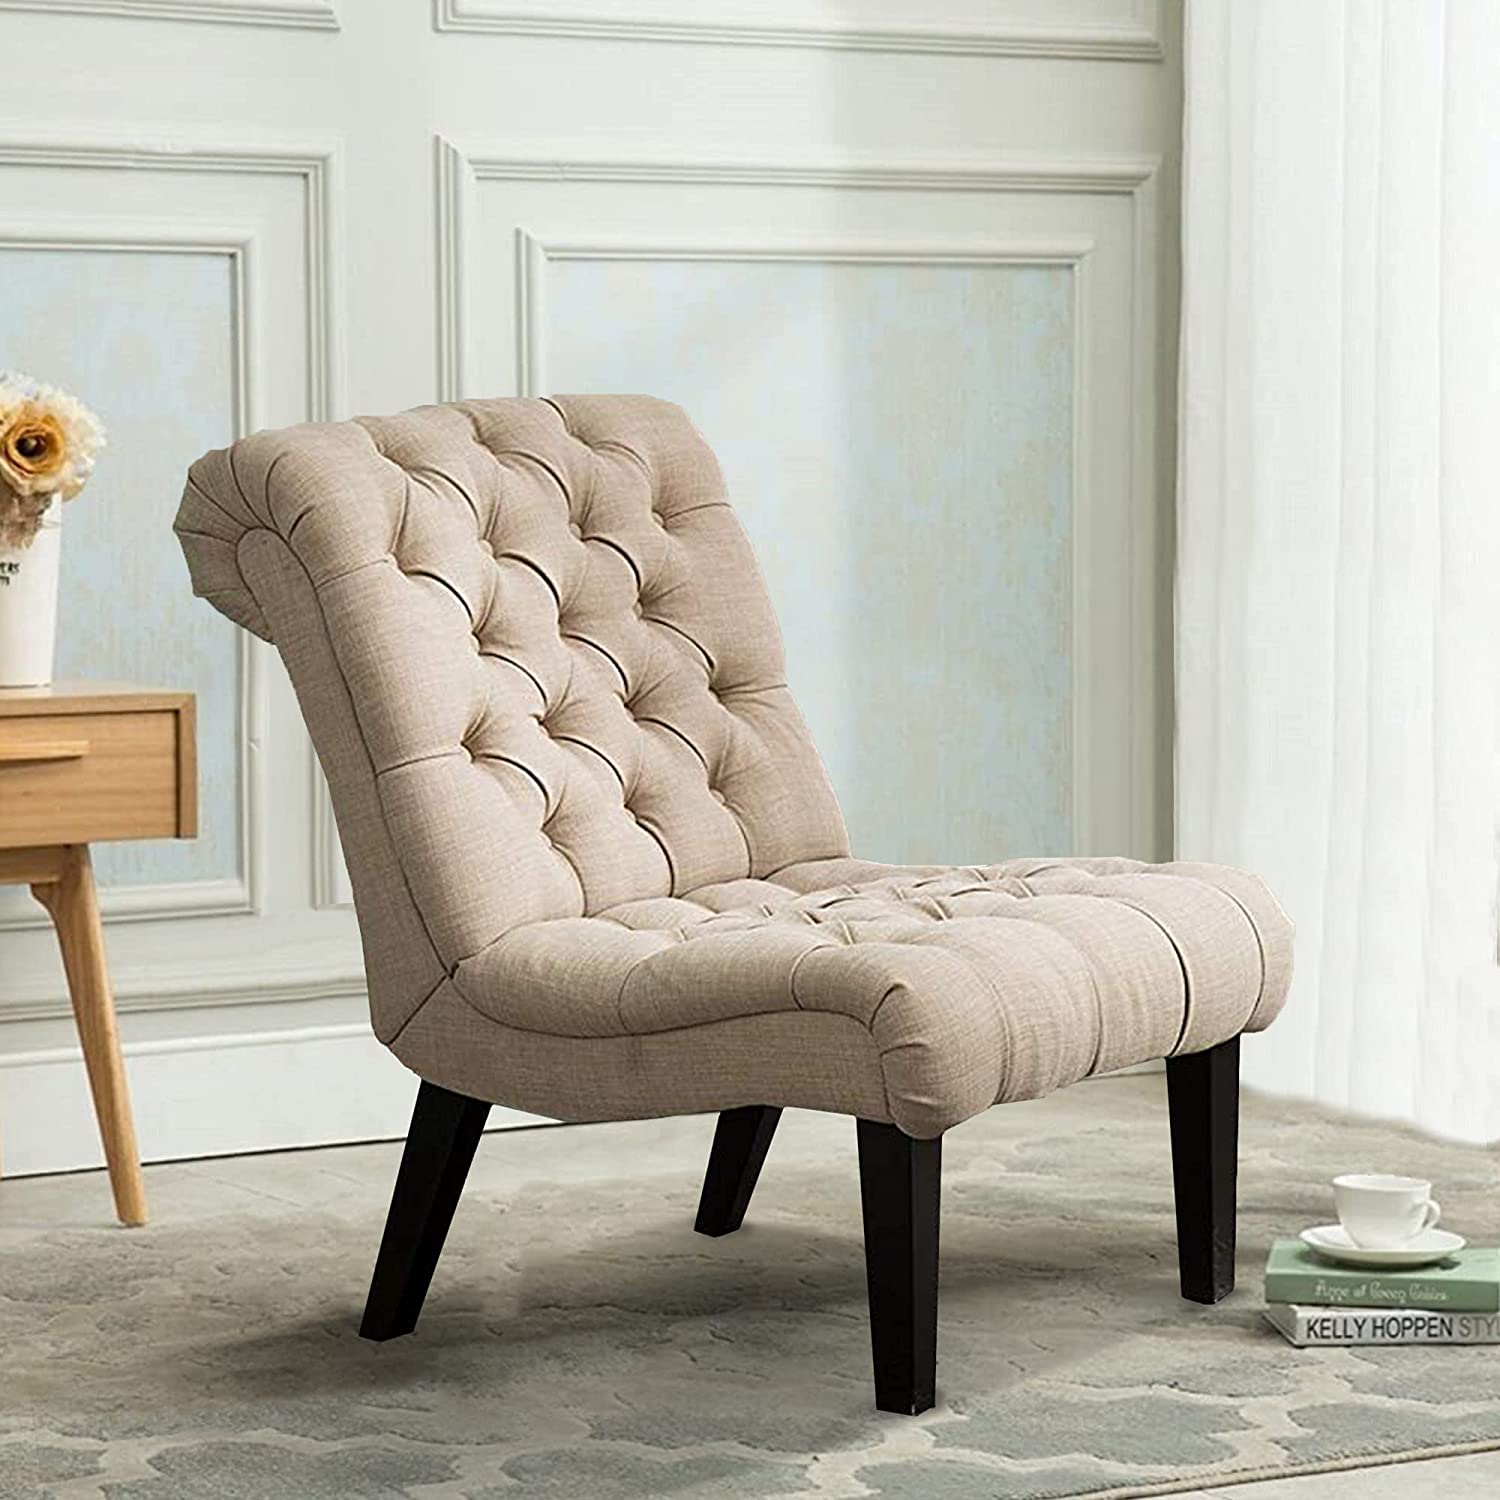 Max 64% OFF Armless Accent Chair Button Special price for a limited time Tufted Side Slipper for